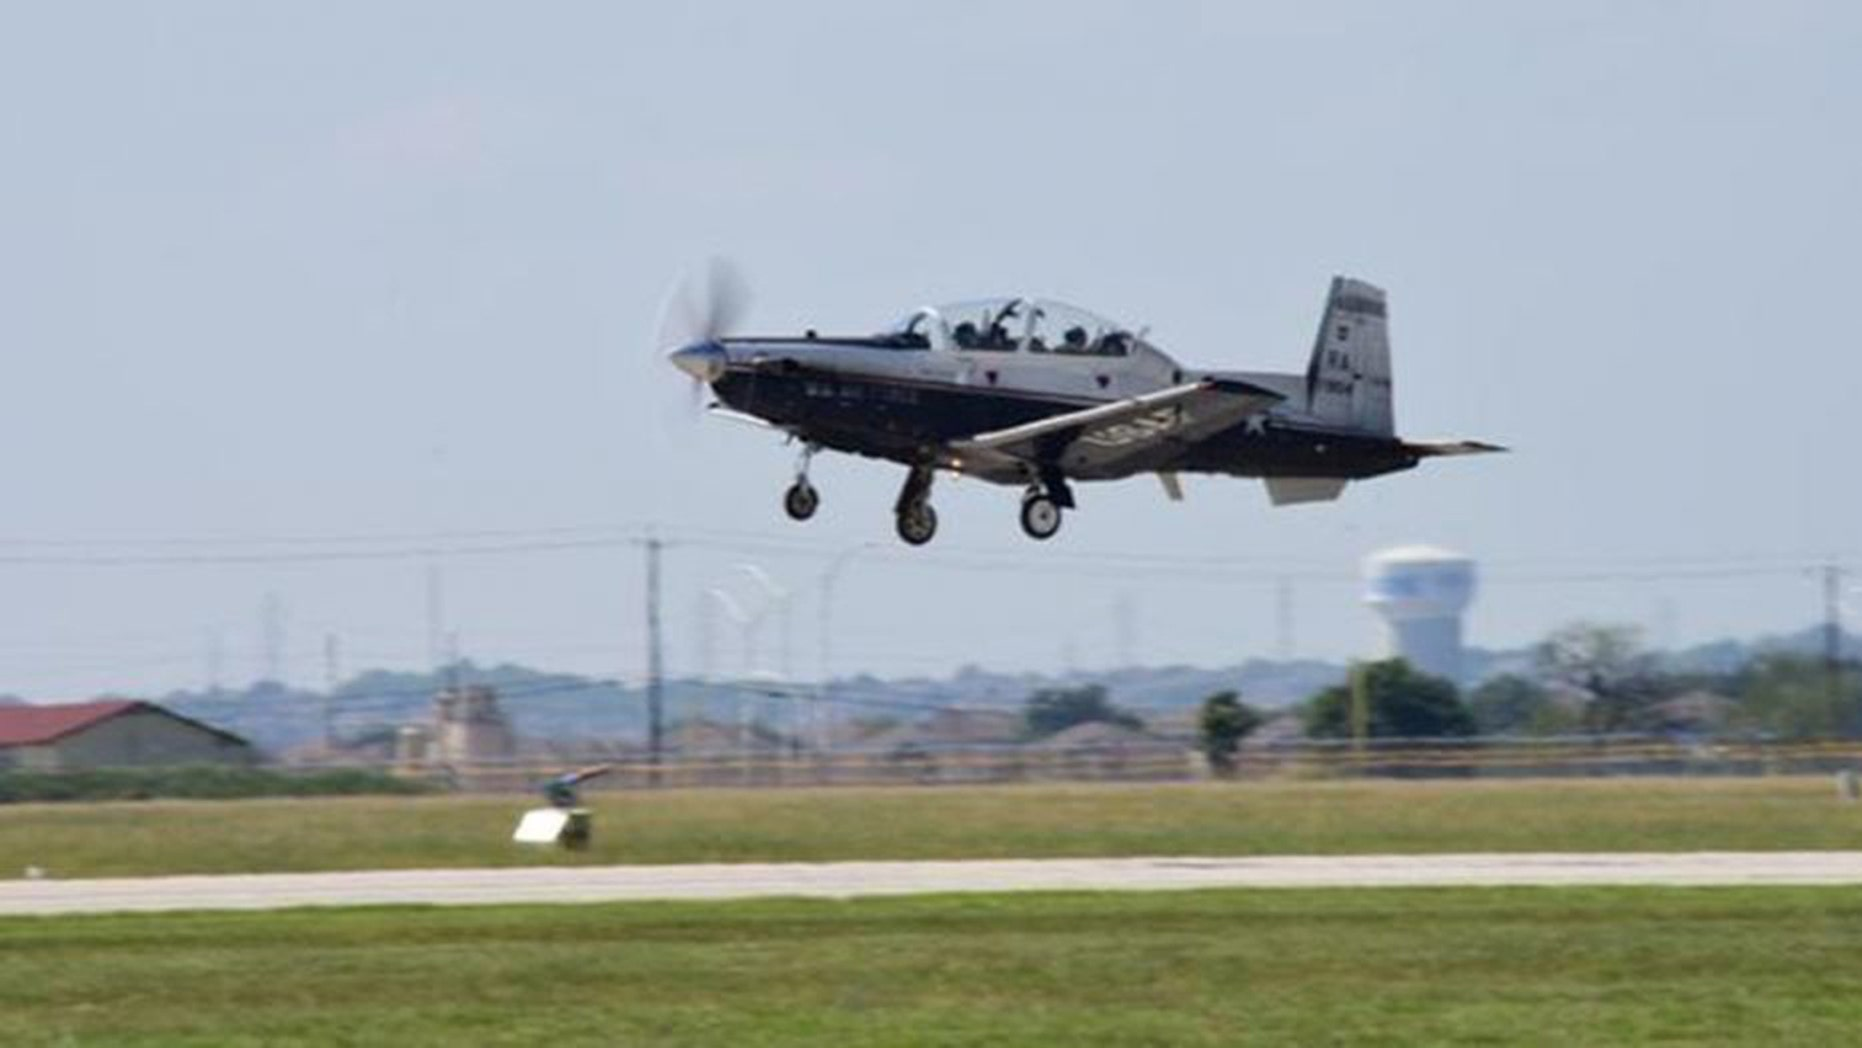 Two pilots survived after ejecting from a T-6 Texan trainer from the Joint Base San Antonio-Randolph in Texas.